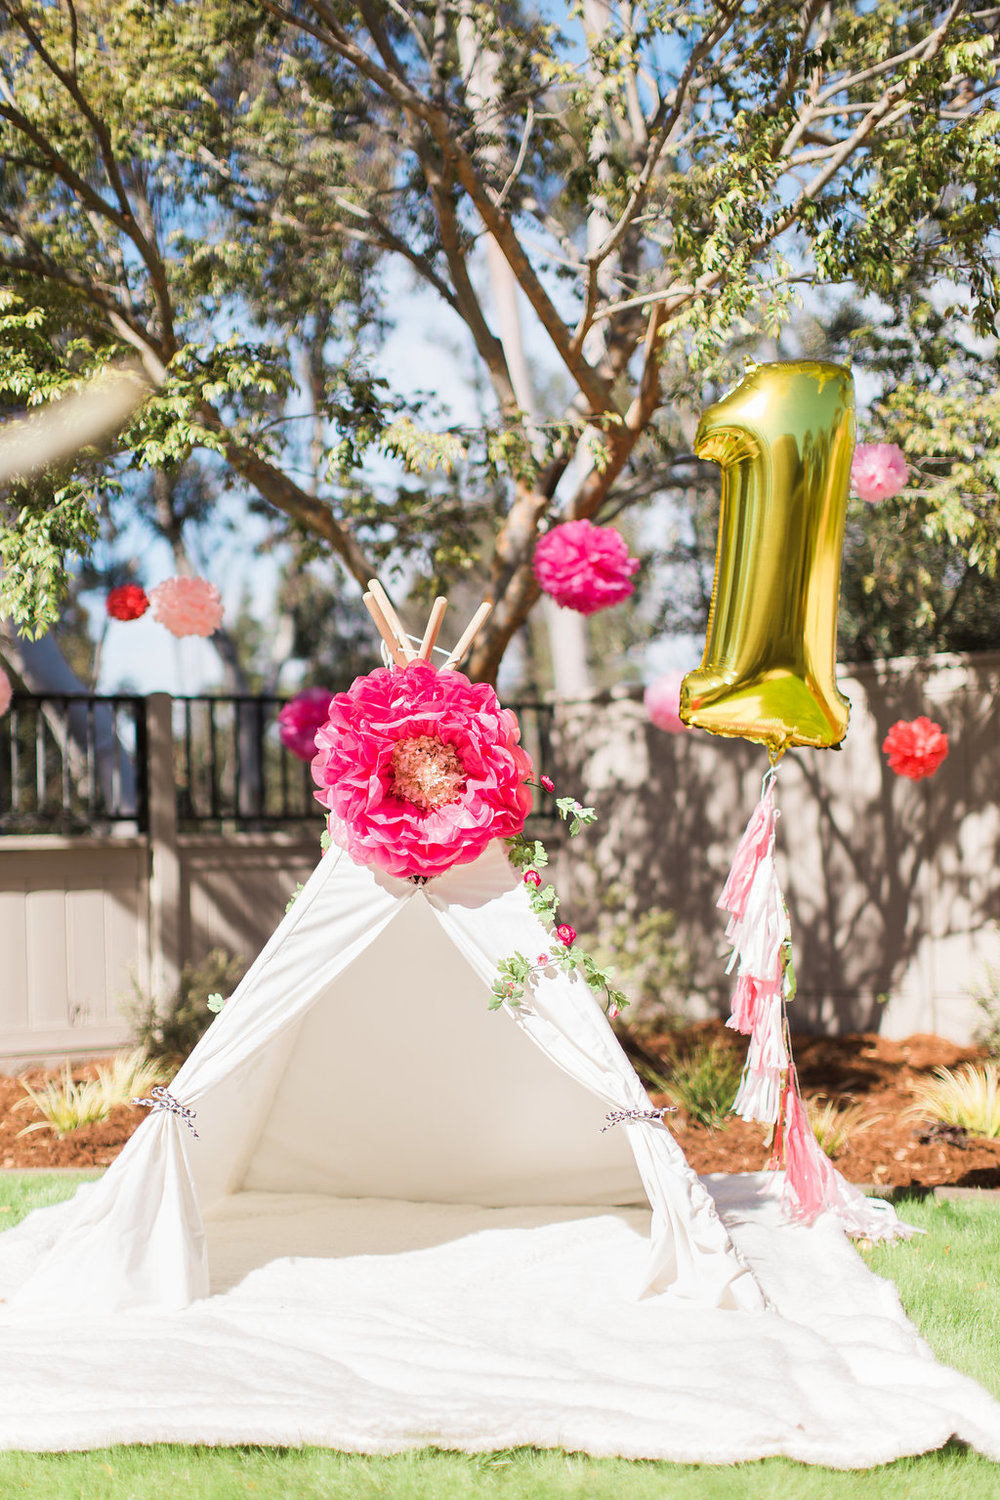 A bright and cheery teepee became the party photo booth and hangout spot.